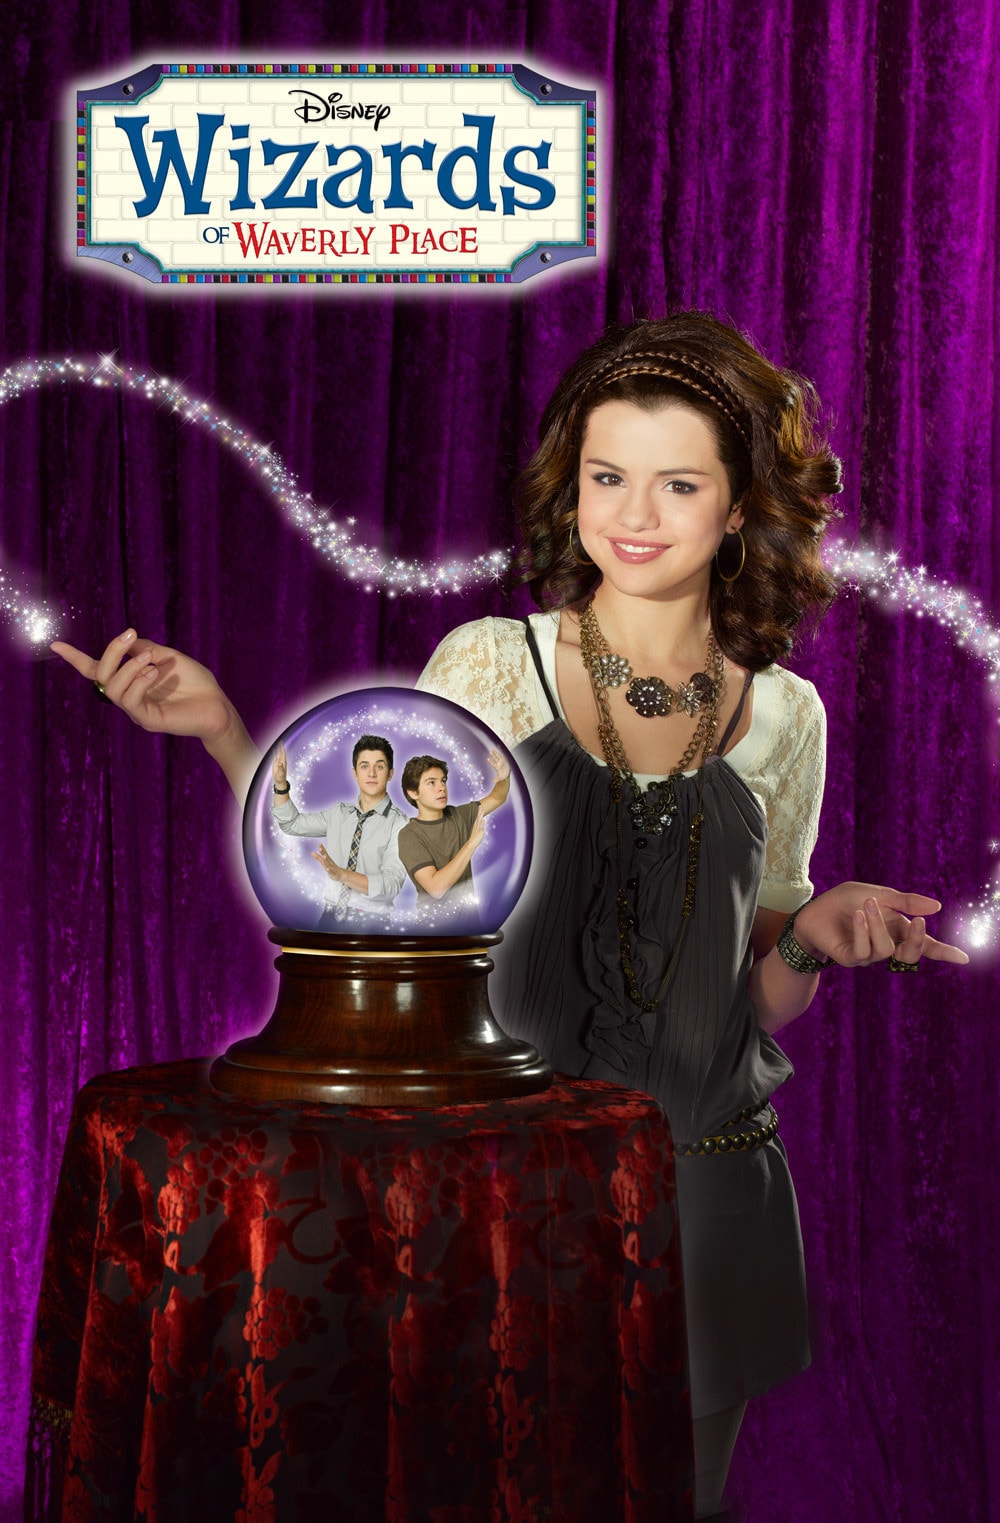 Wizards of Waverly Place Products